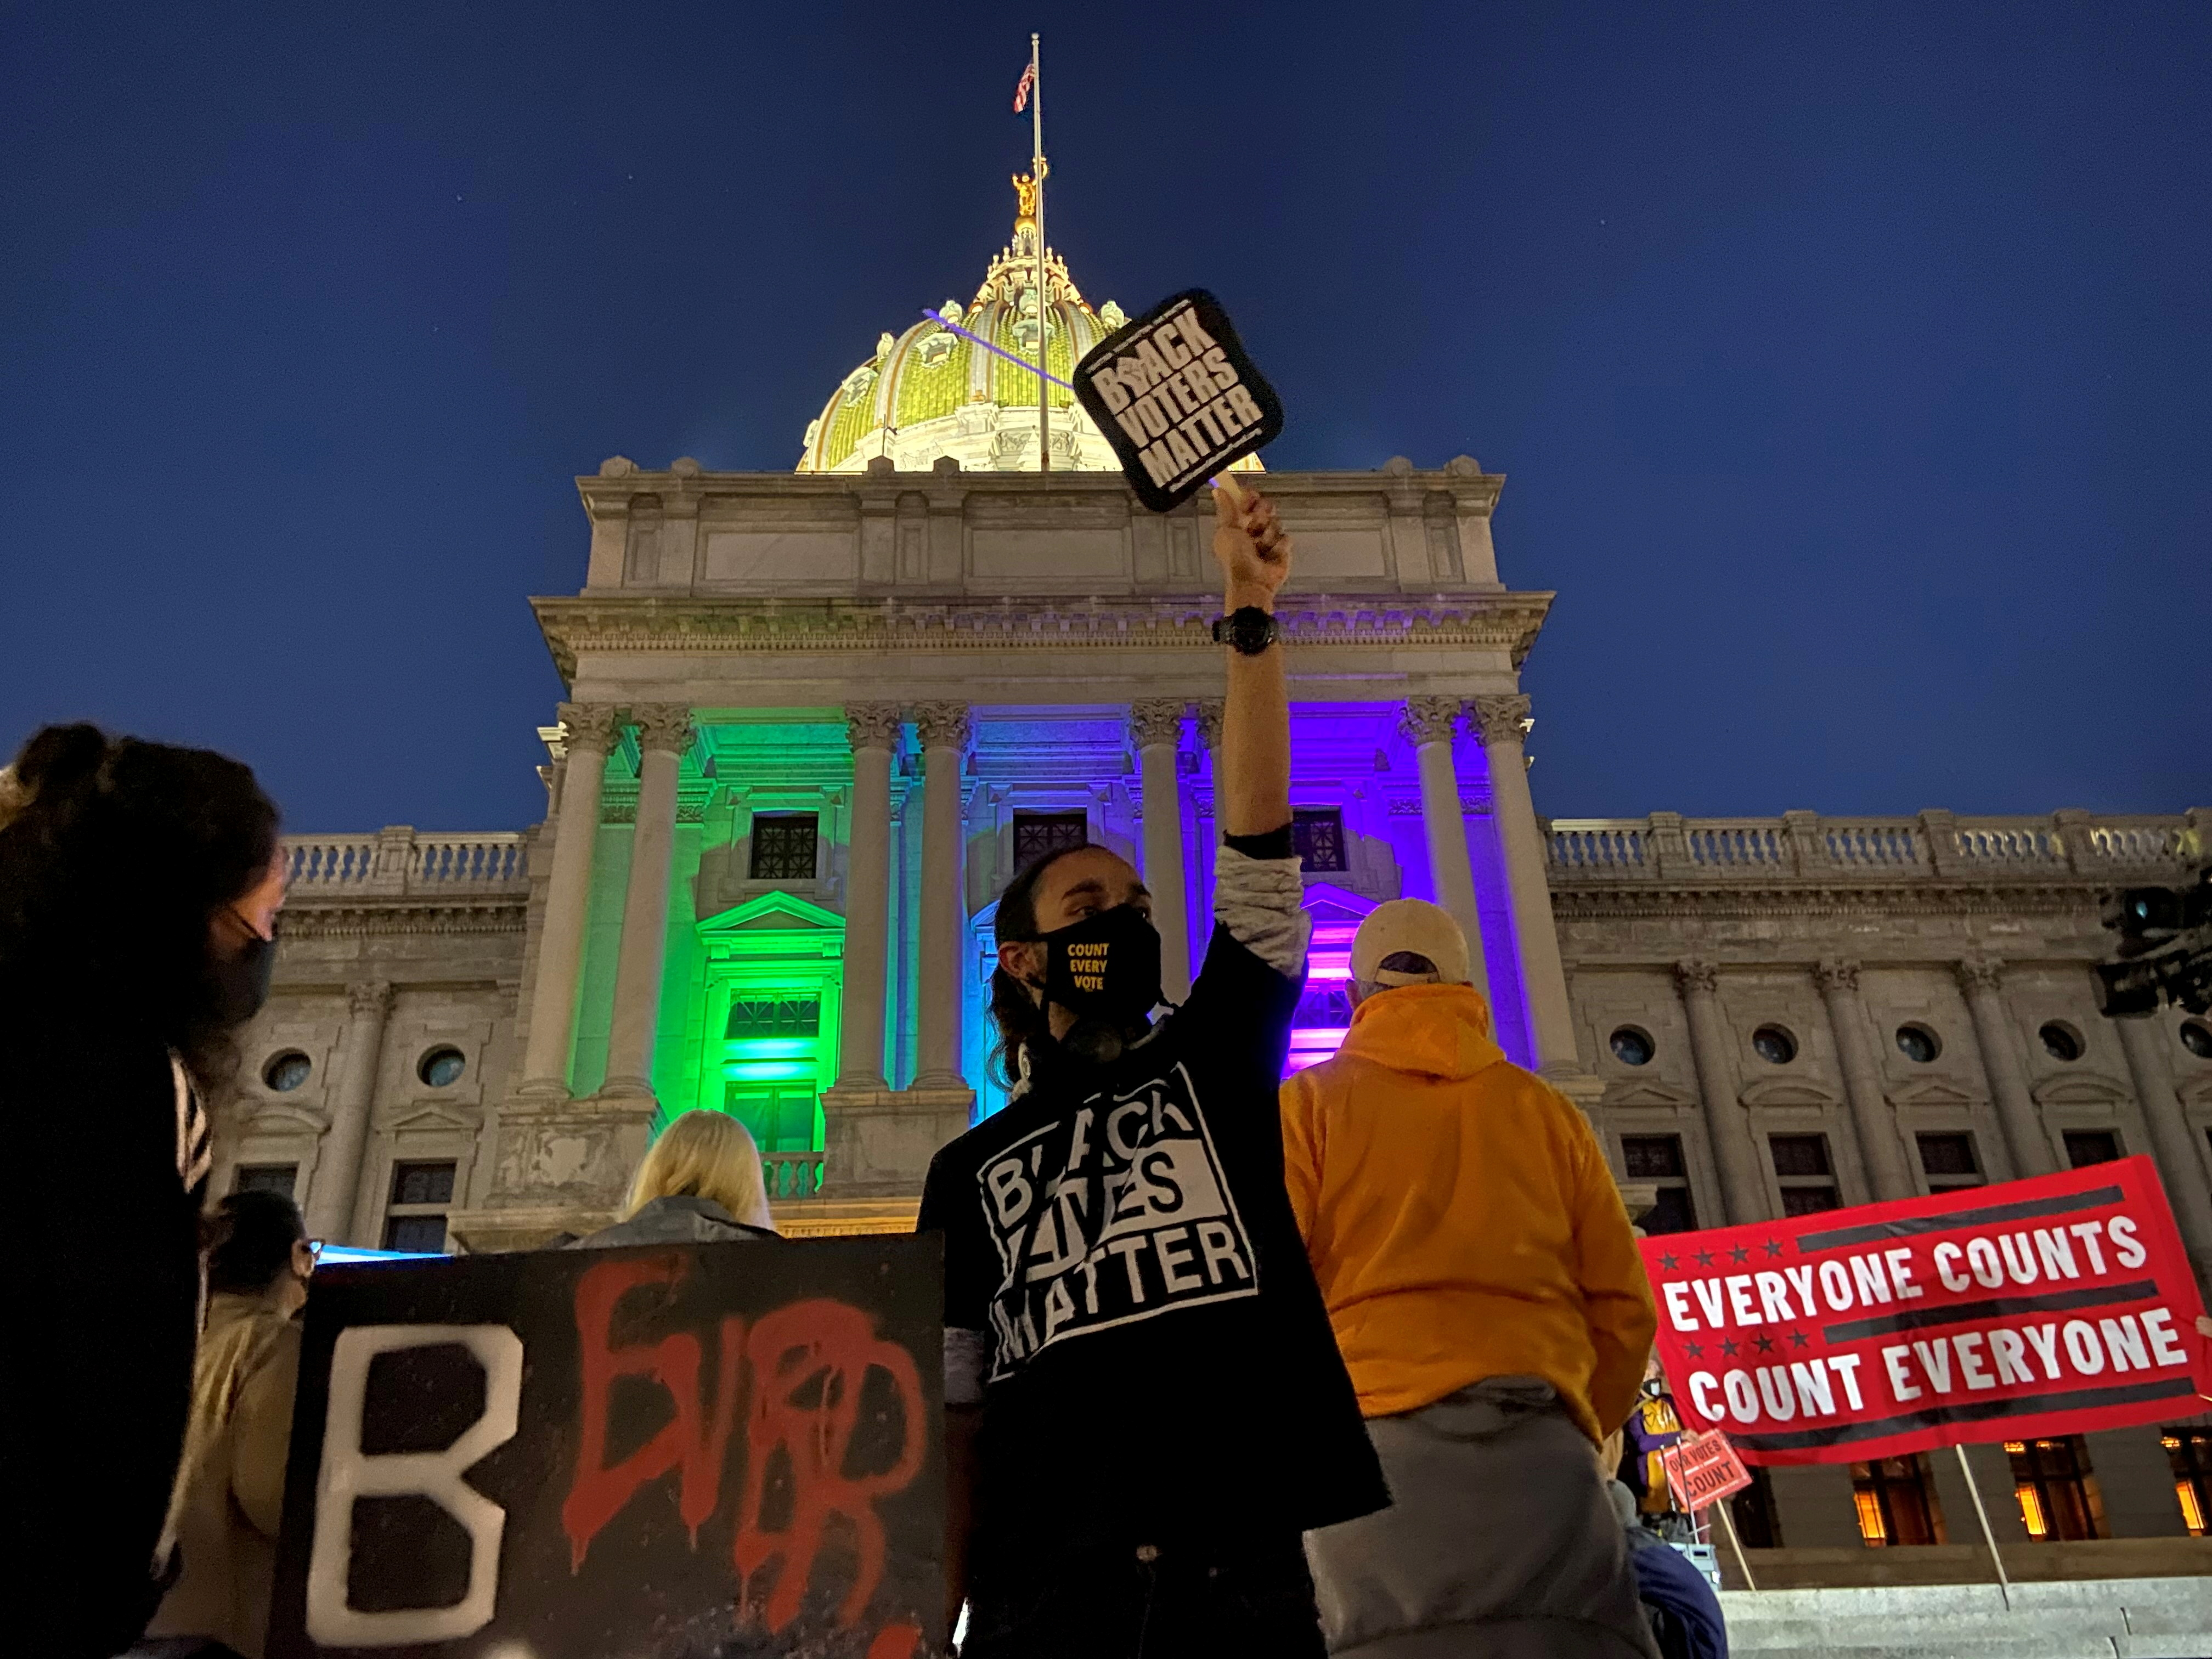 Angel Rivera, a 20-year-old bartender, holds a Black Voters Matter sign during a rally at the Pennsylvania State Capitol Building to protest attempts to halt the counting of ballots cast in the state for the 2020 presidential election, in Harrisburg, Pennsylvania November 4, 2020. REUTERS/Nathan Layne/File Photo